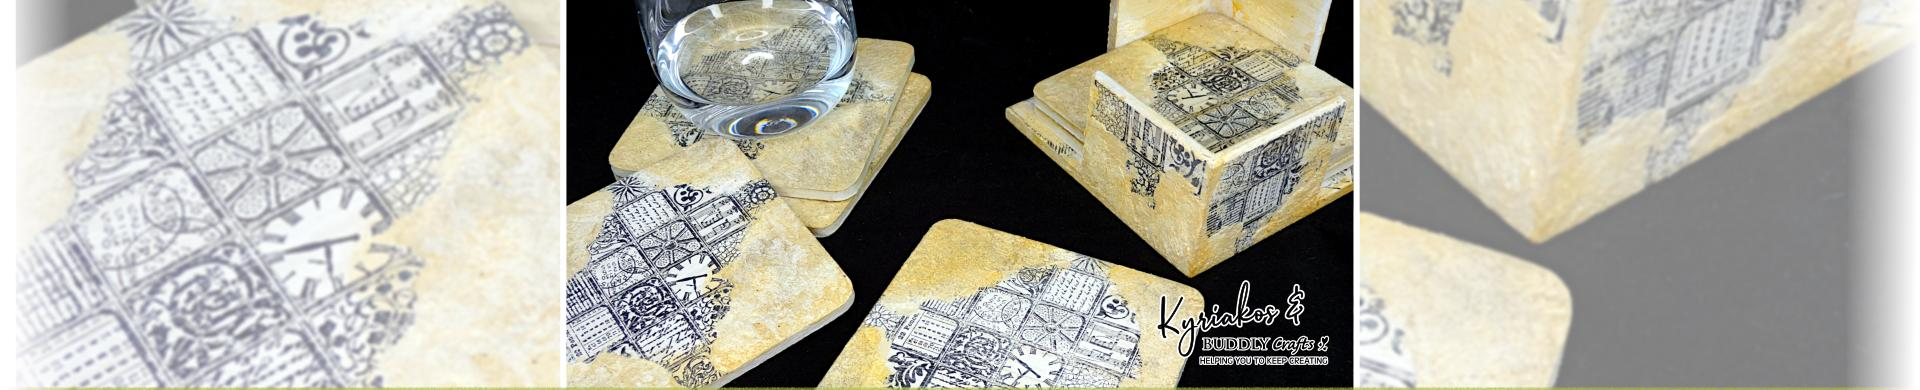 Arty Mosaic Rubber Stamped Coasters